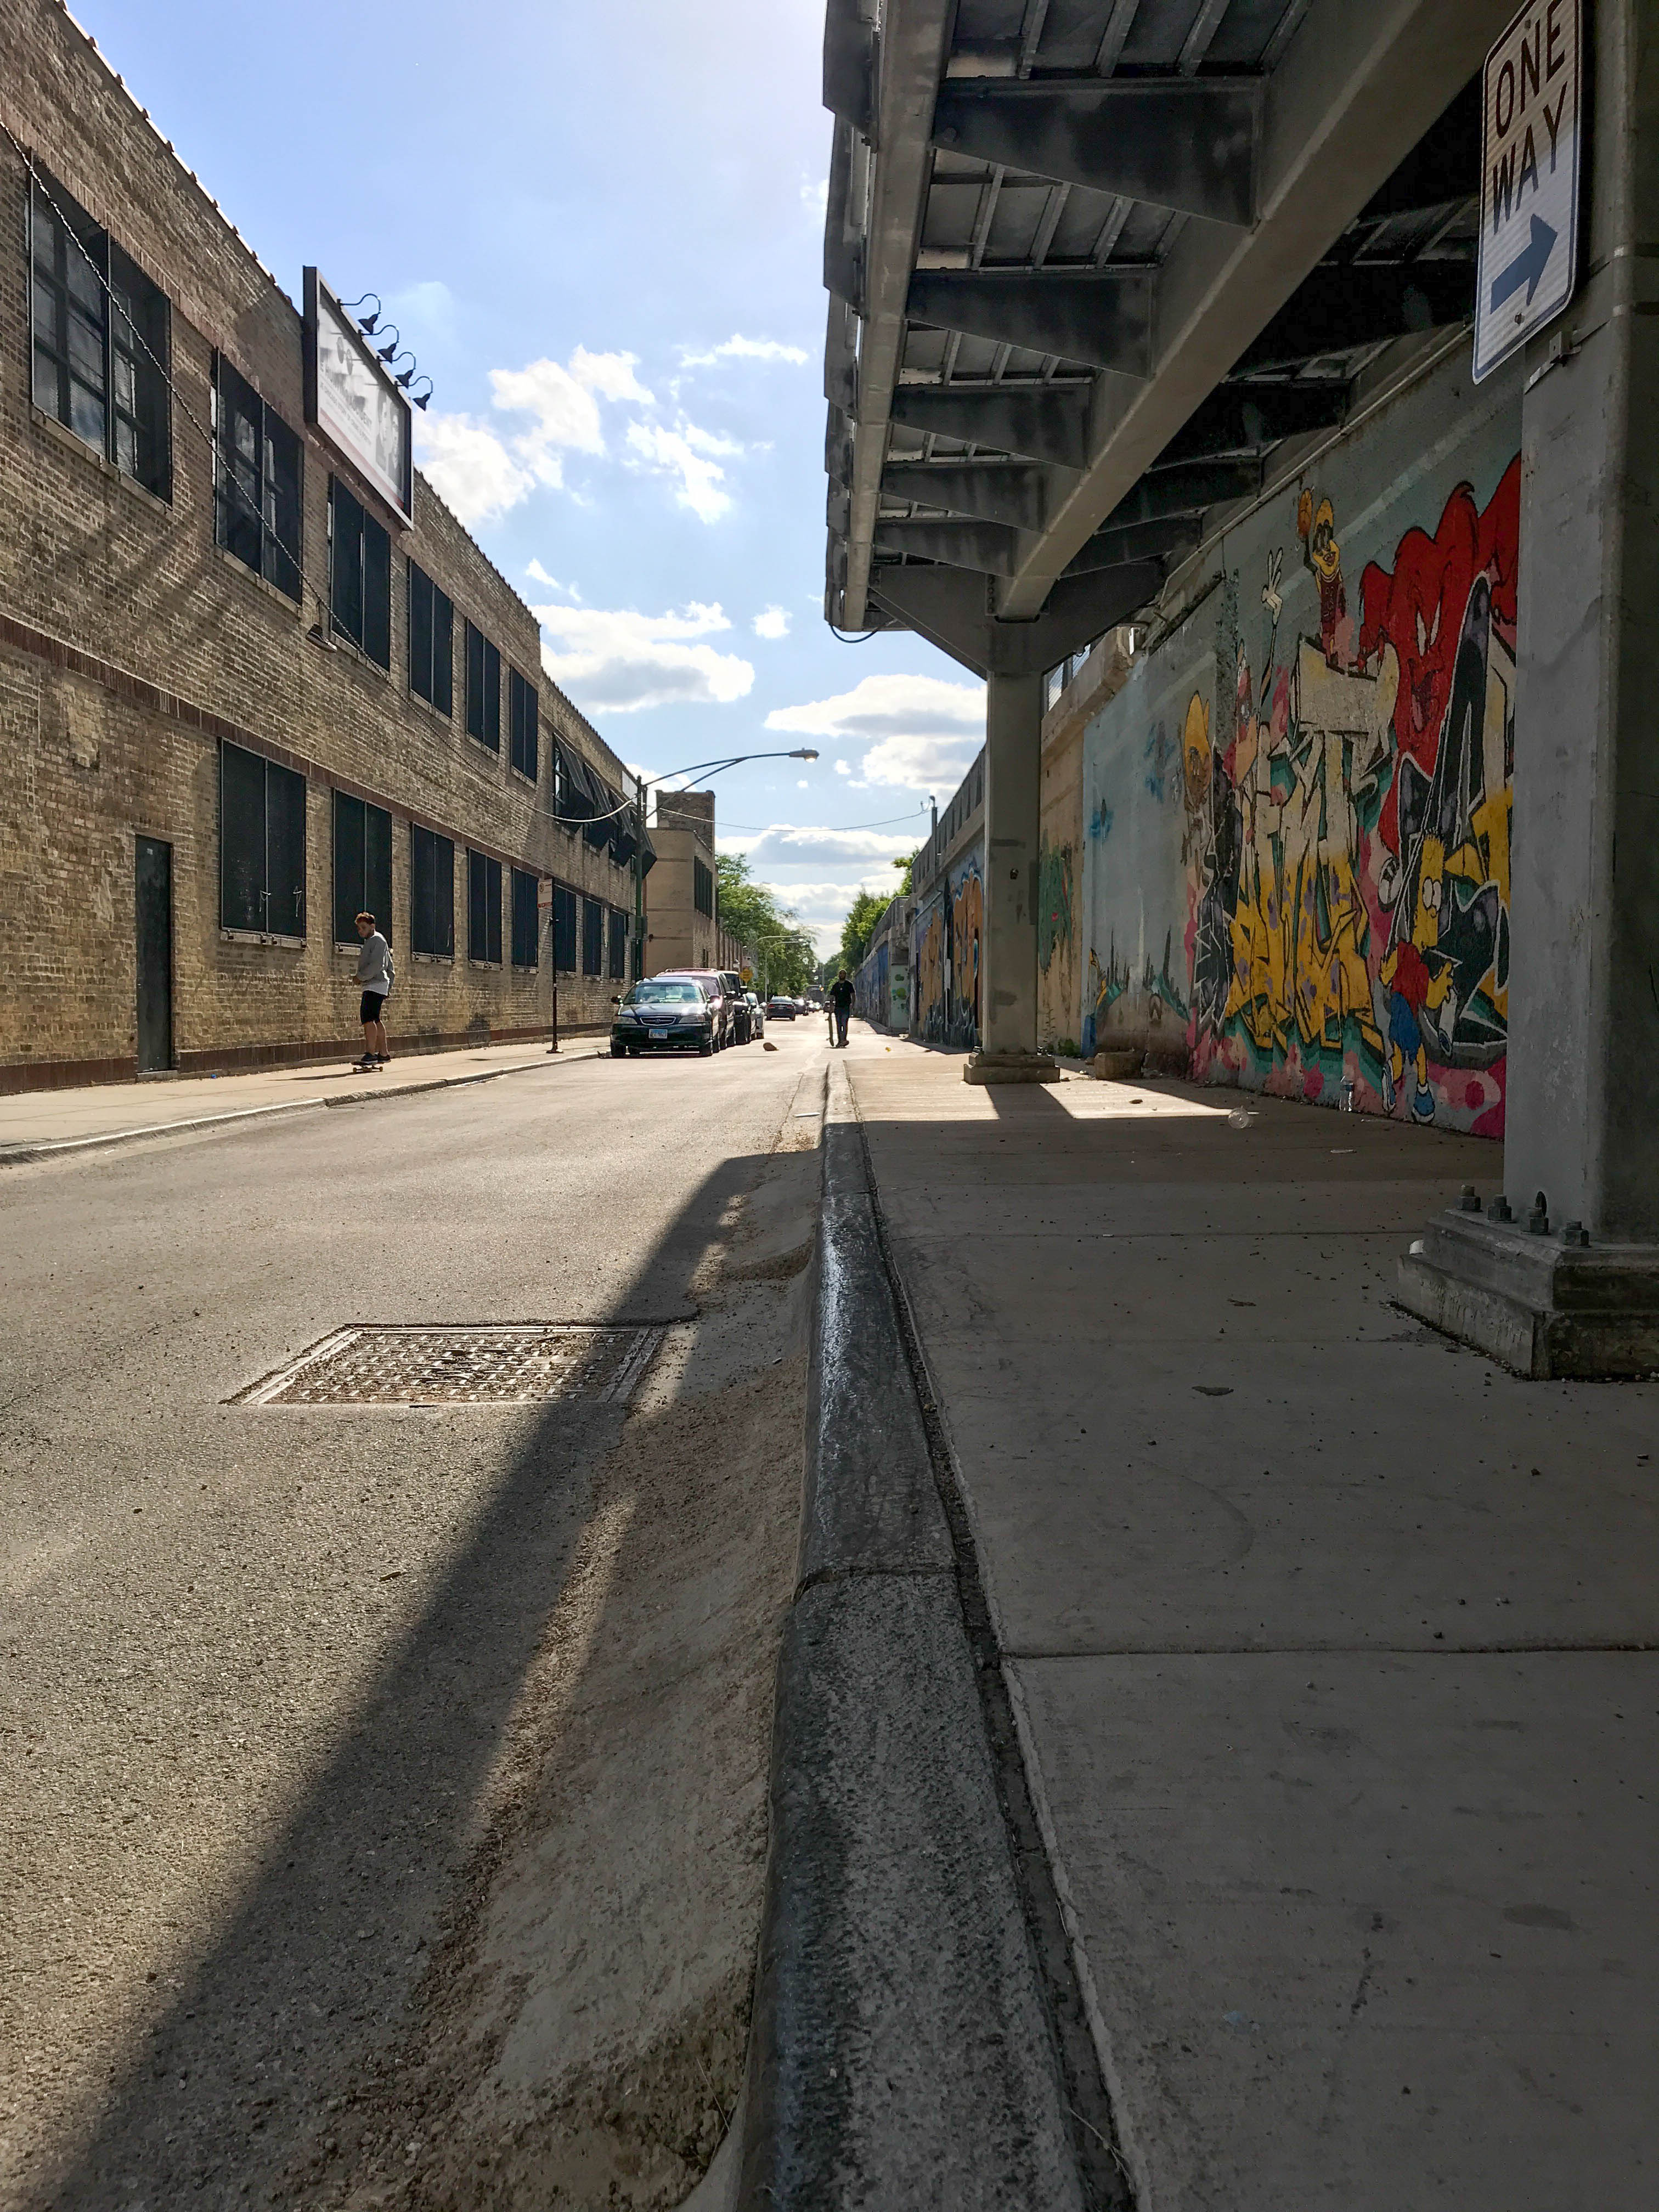 Photo of a curb with a cemented ramp on Bloomingdale street by the 606 trail